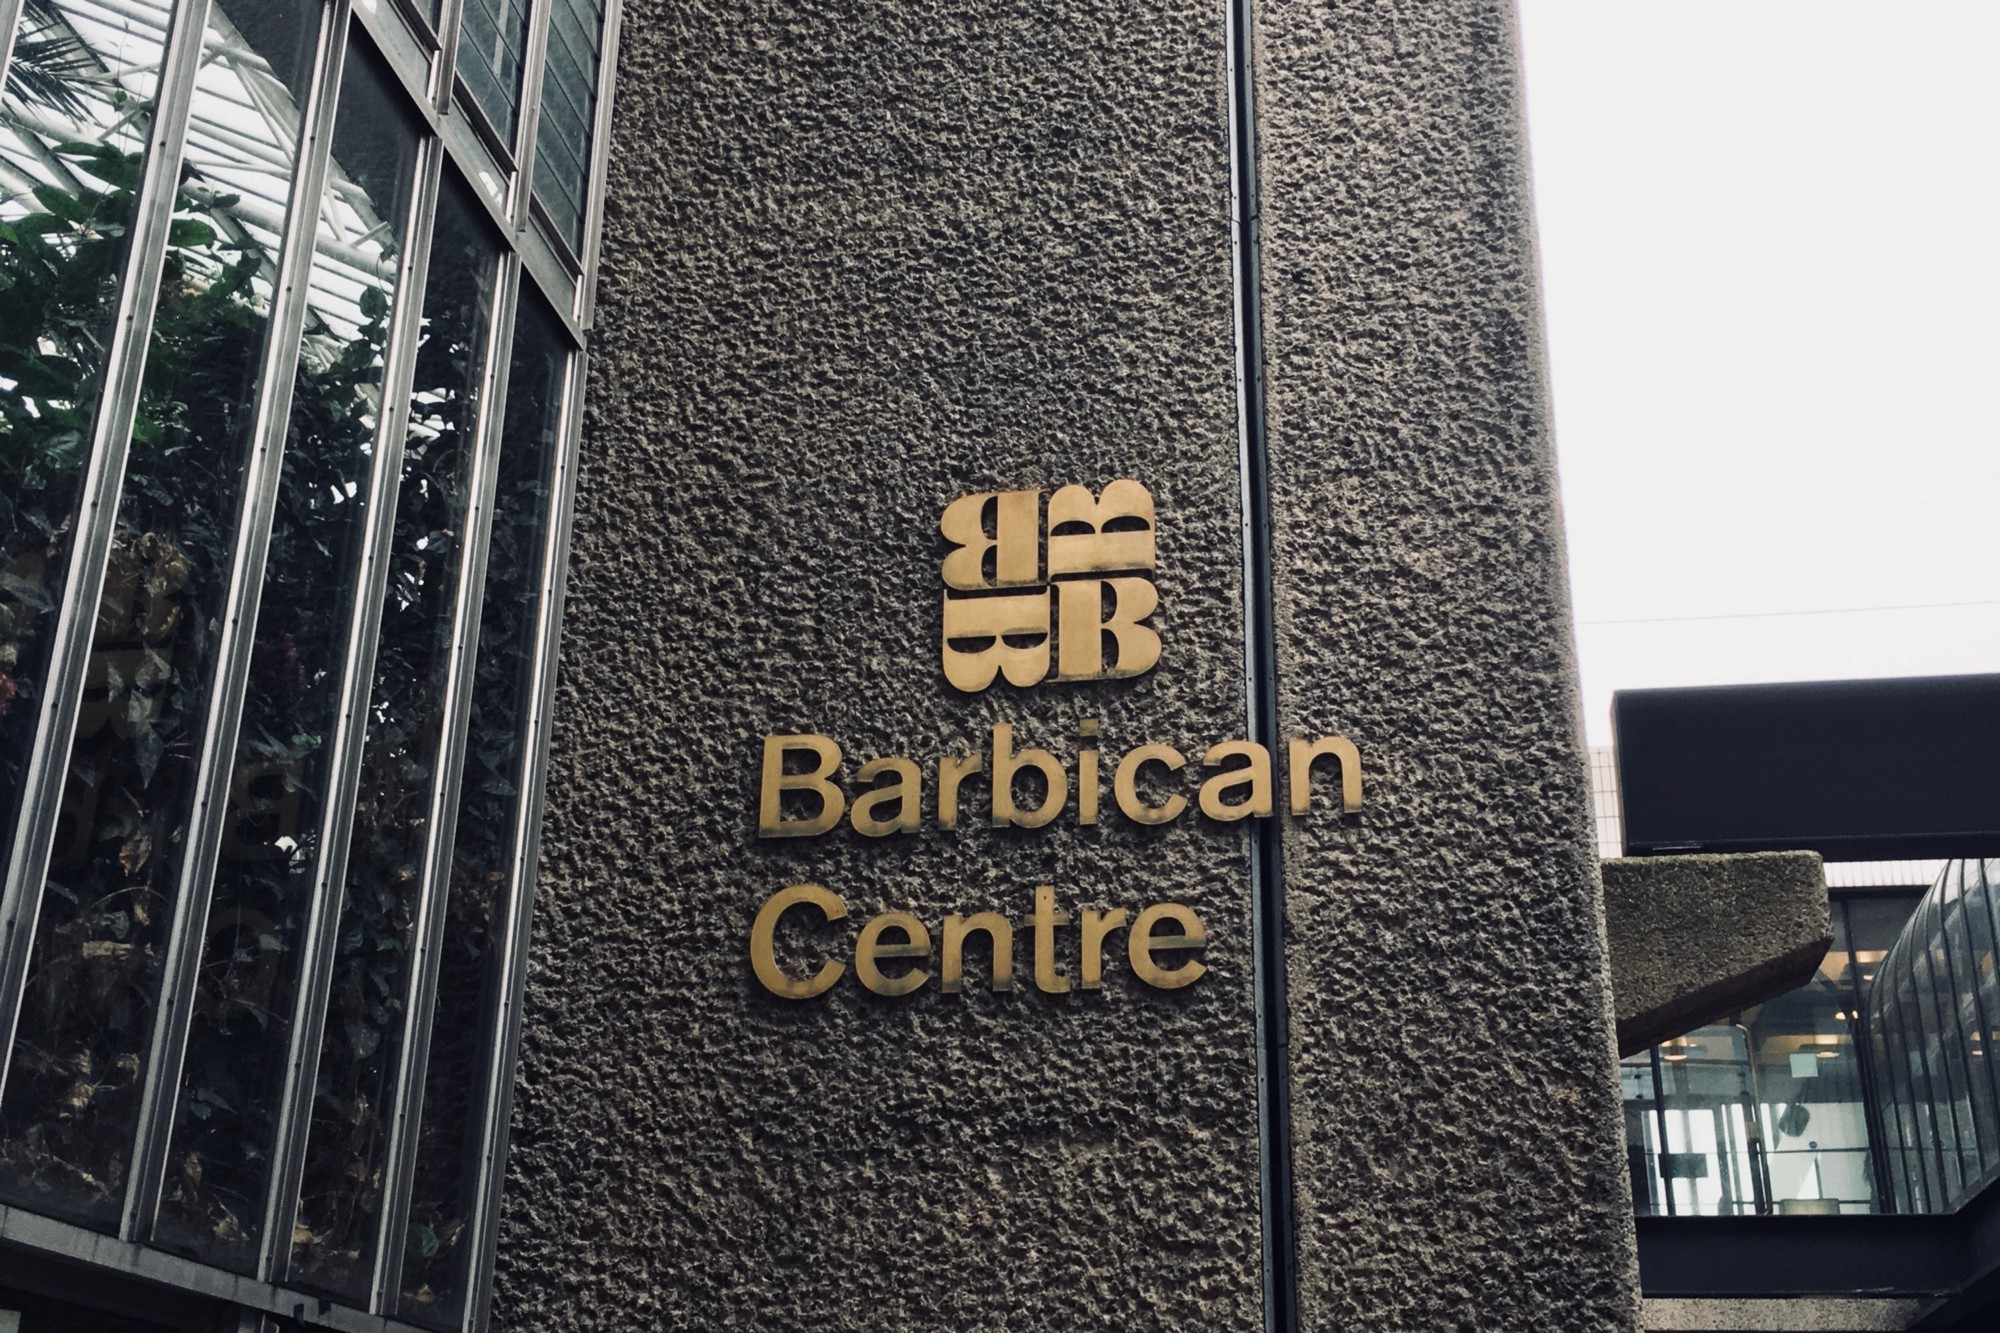 The Barbican Centre entrance — The venue for the excellent Leading Design Conference